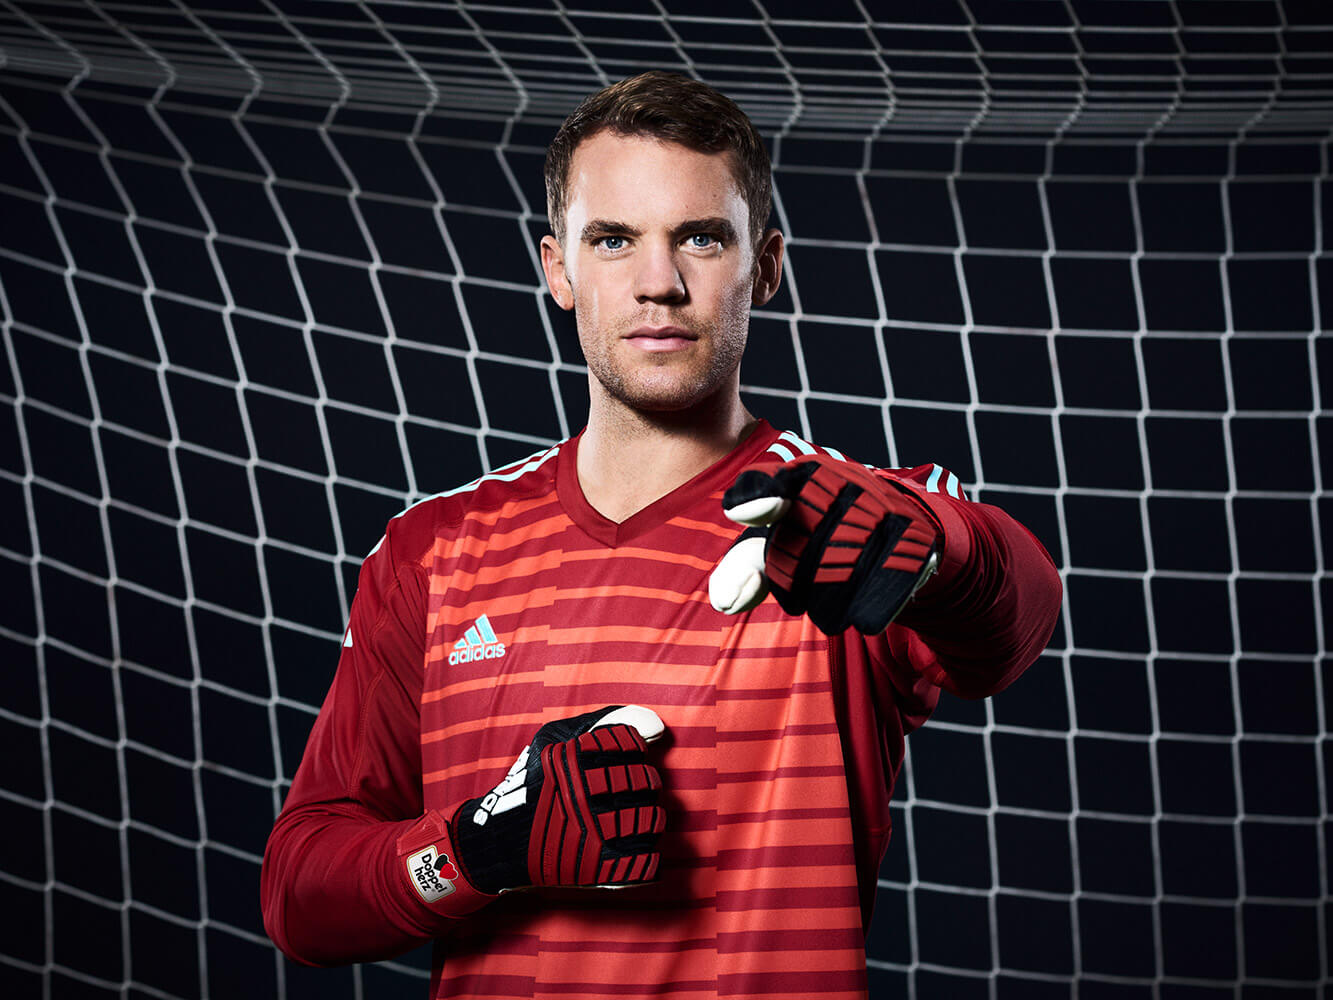 Manuel Neuer Doppelherz Queisser Pharma I want you